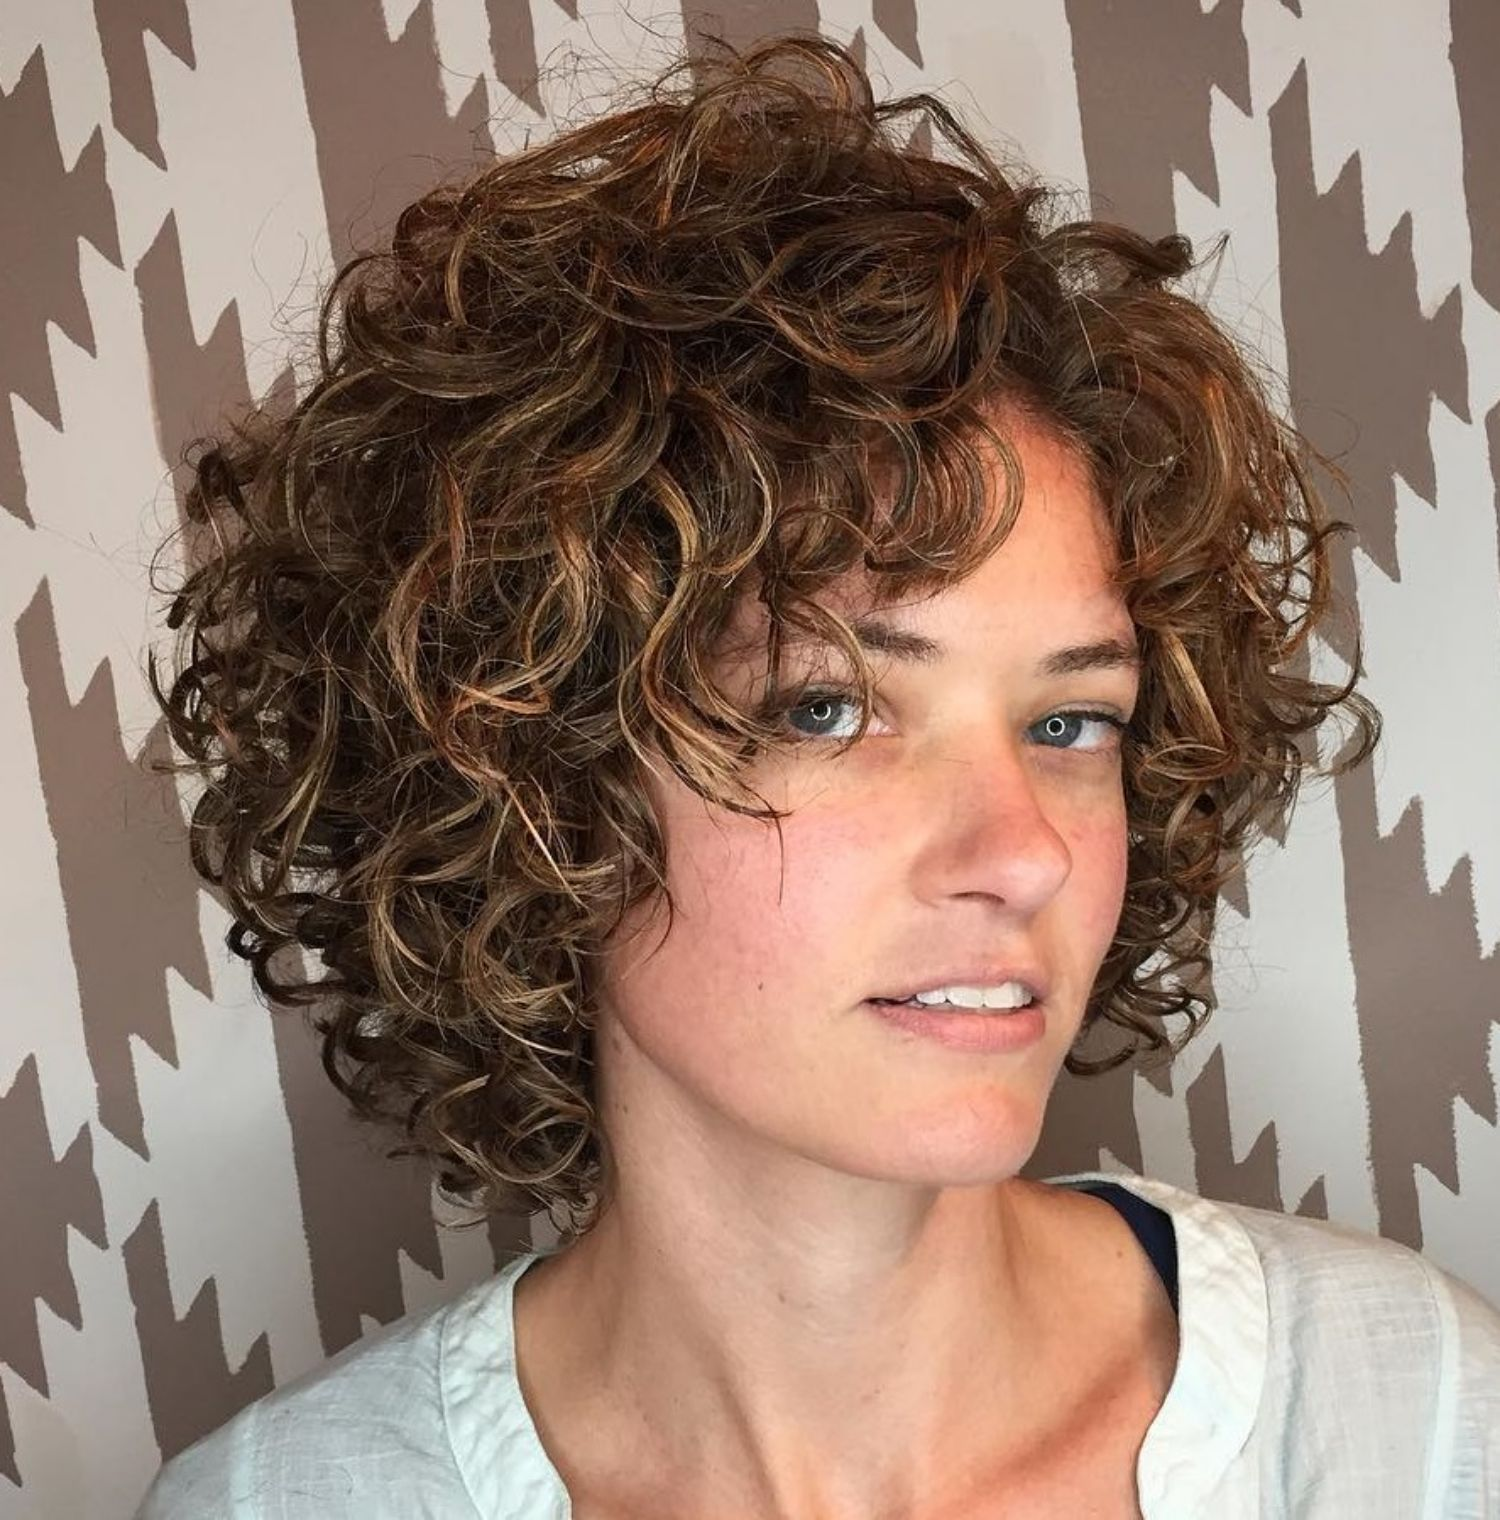 65 Different Versions Of Curly Bob Hairstyle Curly Hair Styles Hair Styles Short Curly Haircuts